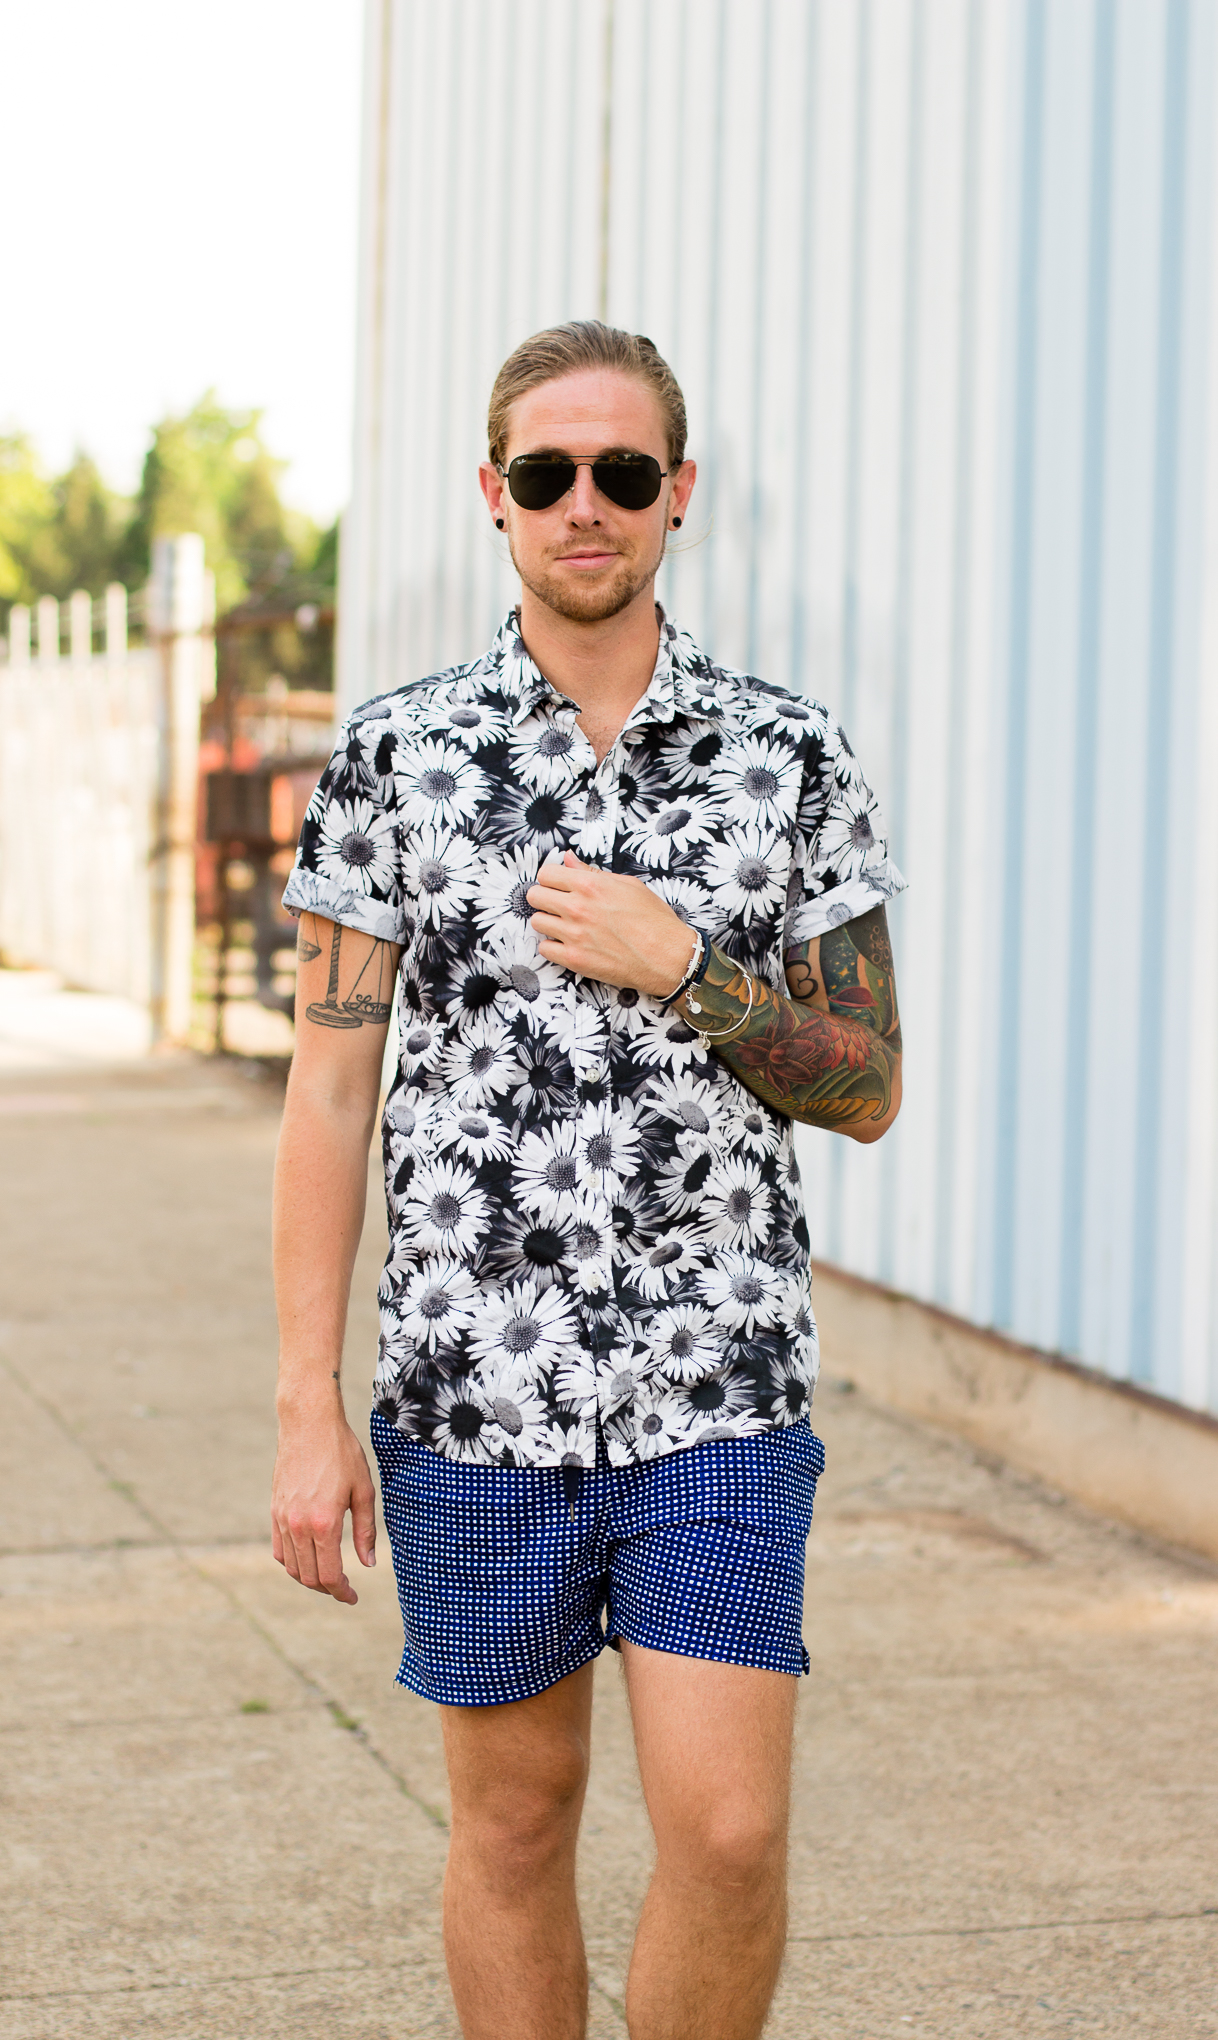 topman, hm, floral shirts, printed shorts, how to wear prints